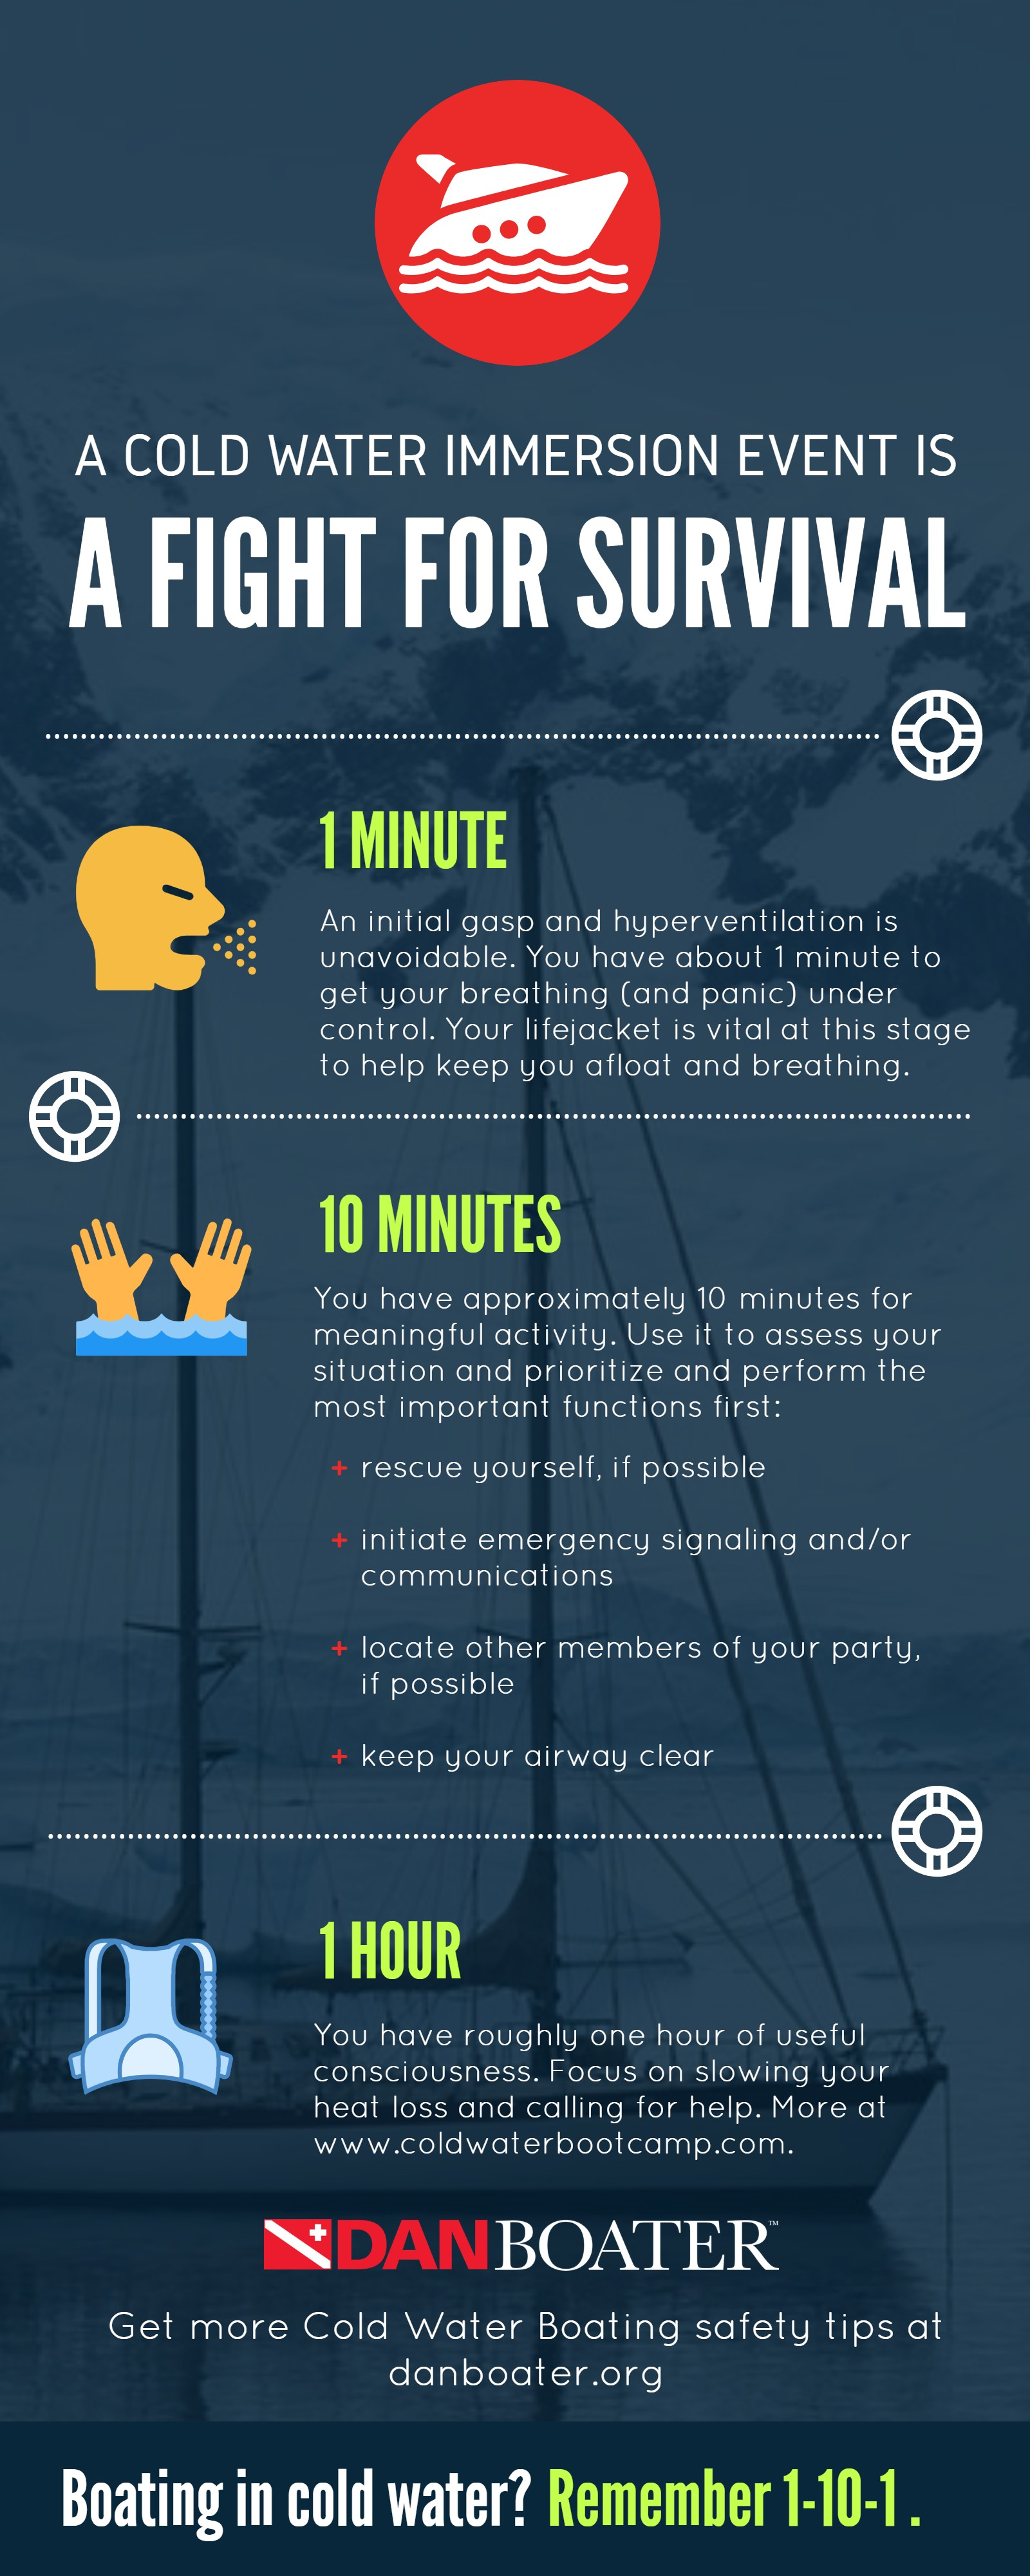 1-10-1: A Cold Water Immersion Event Is A Fight For Survival (infographic)